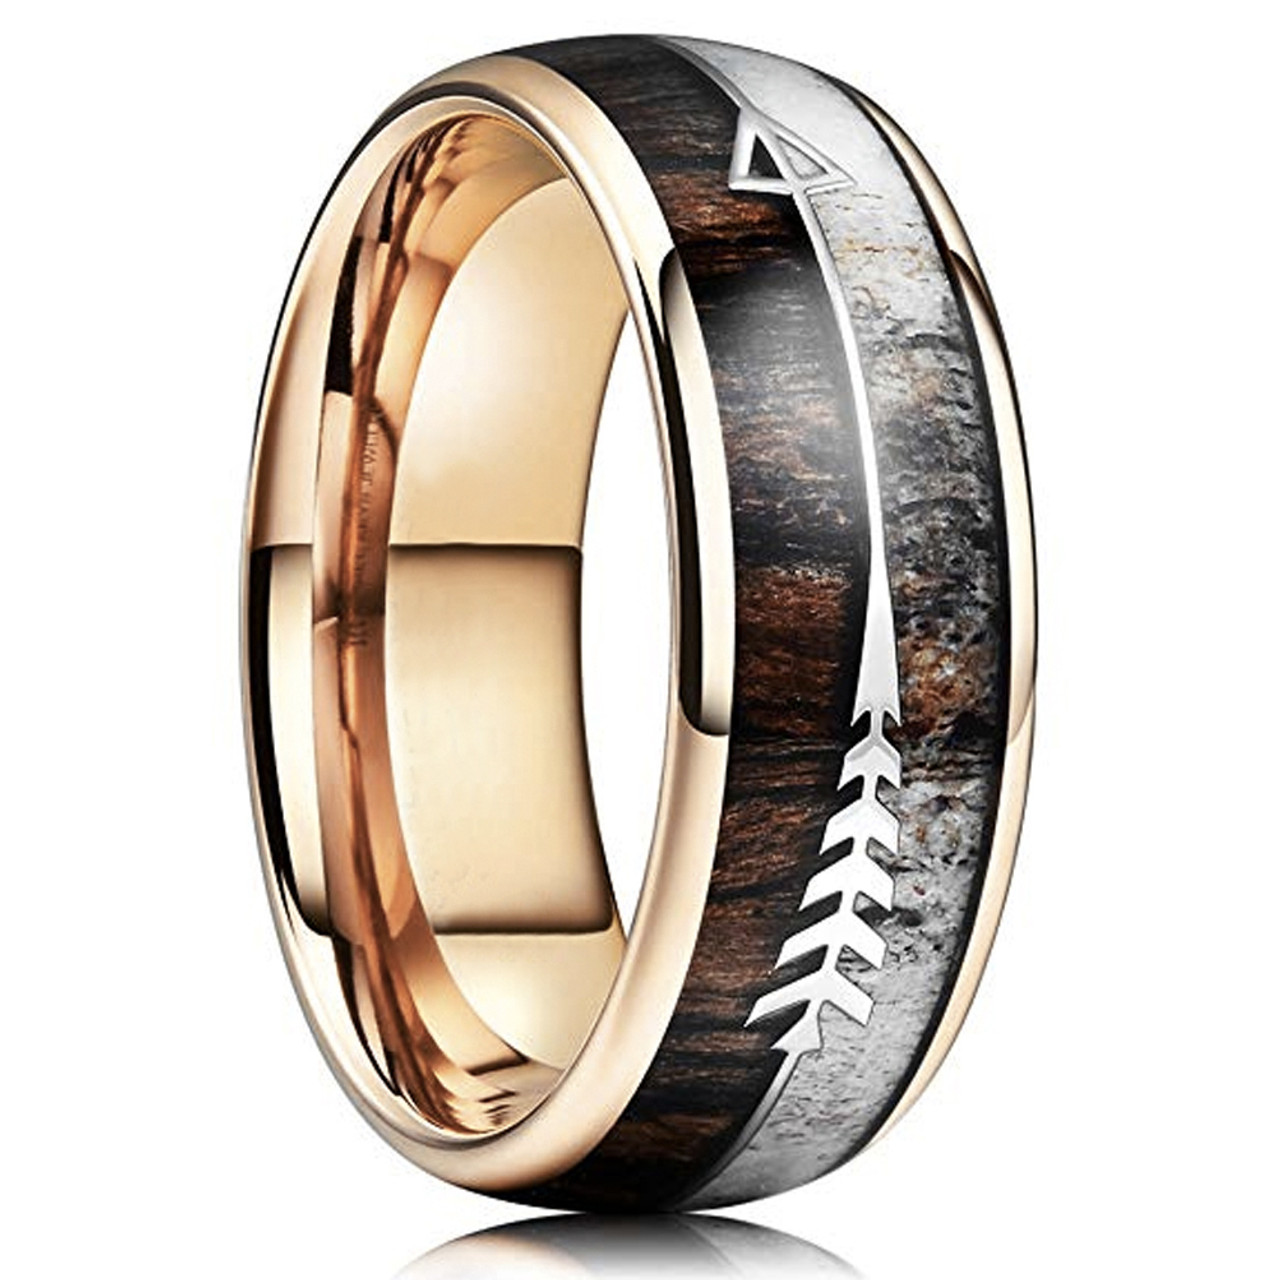 4mm Tungsten Ring Unisex Classic Style Domed Rose Gold Plated High Polish